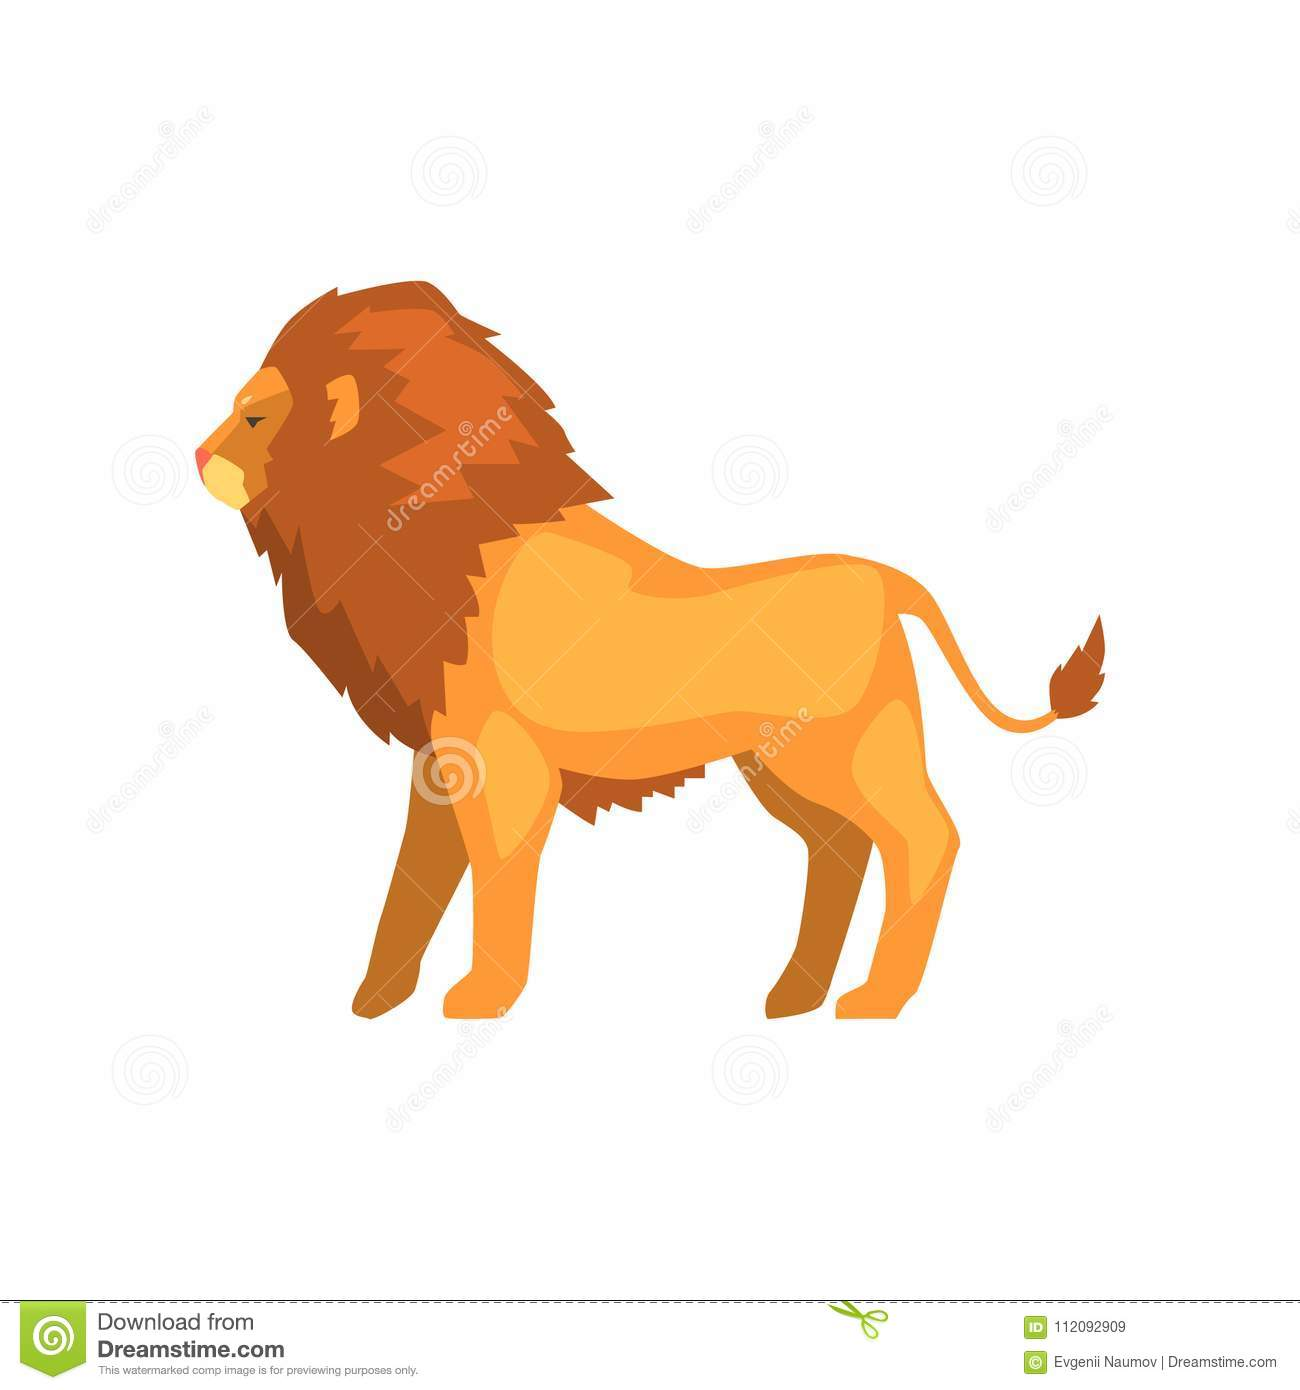 Lion Side View Stock Illustrations 357 Lion Side View Stock Illustrations Vectors Clipart Dreamstime Lion head side view tattoo lion outline tattoo related keywords. https www dreamstime com powerful lion standing wild predatory animal side view vector illustration white background powerful lion standing wild image112092909